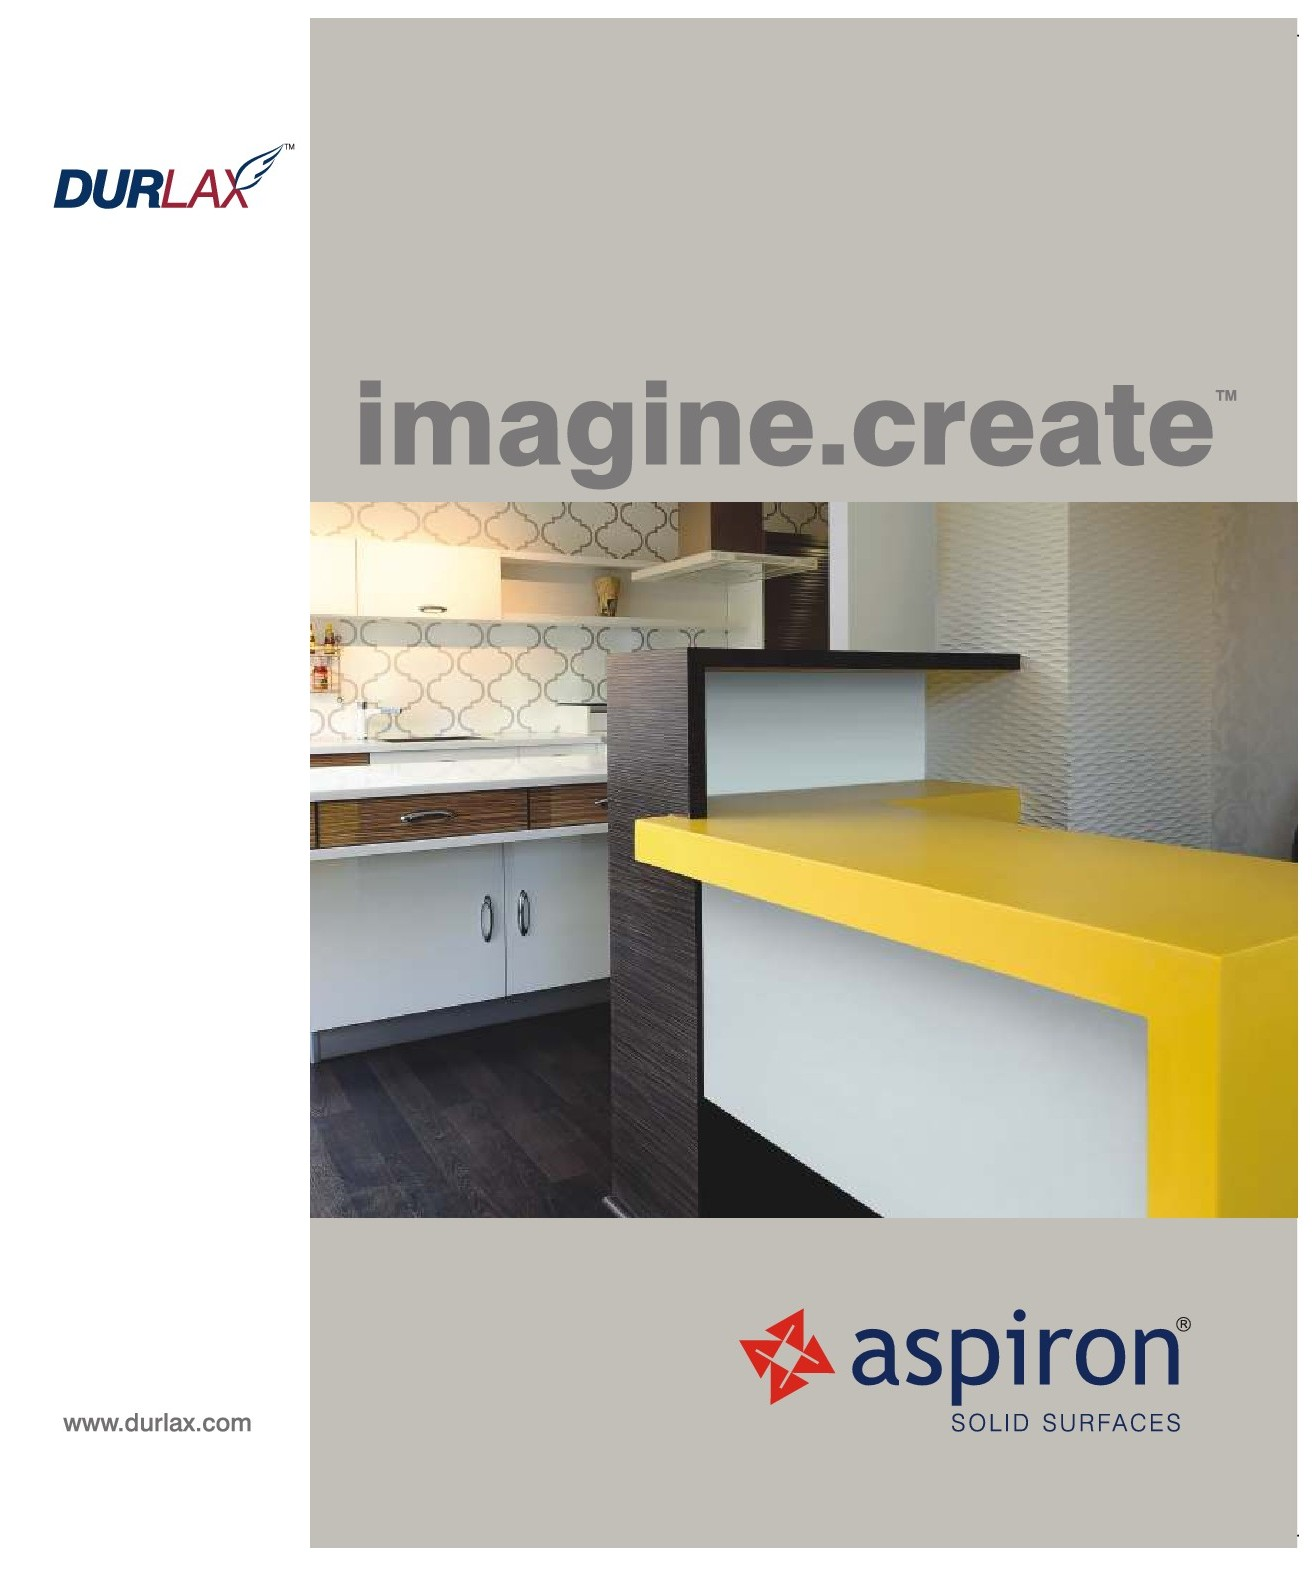 DURLAX LUXOR ASPIRON & 3LAM Products Catalogue